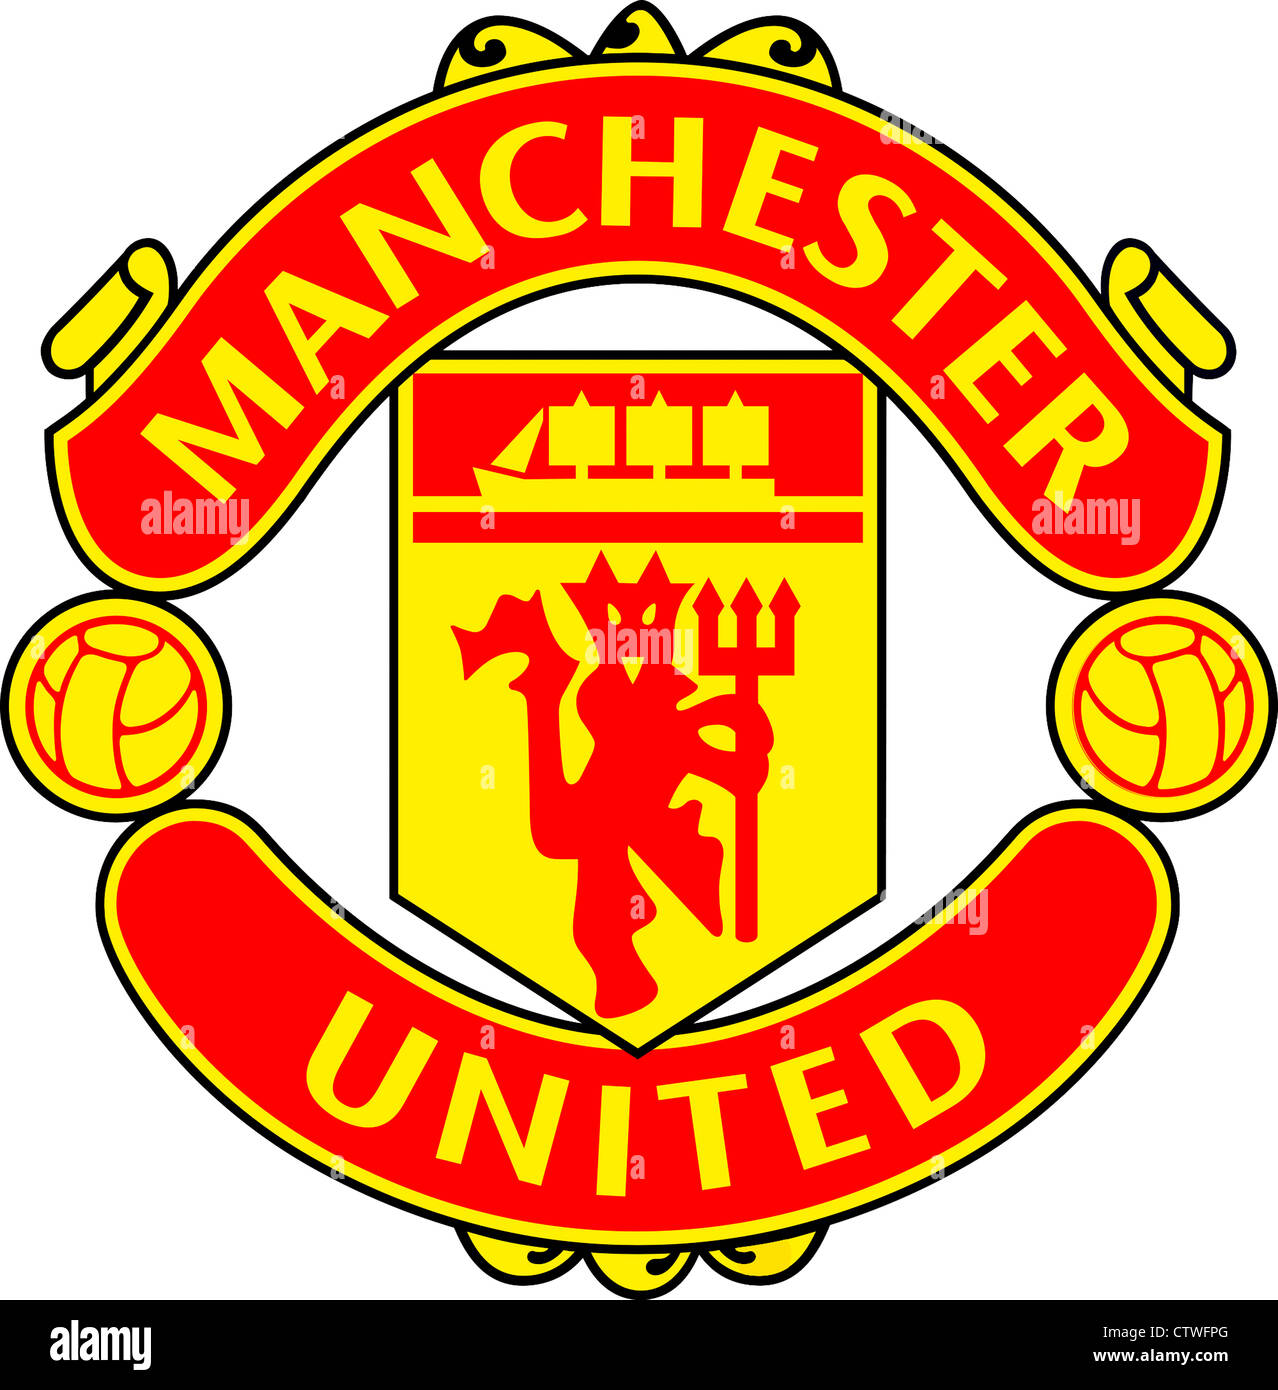 logo of english football team manchester united stock